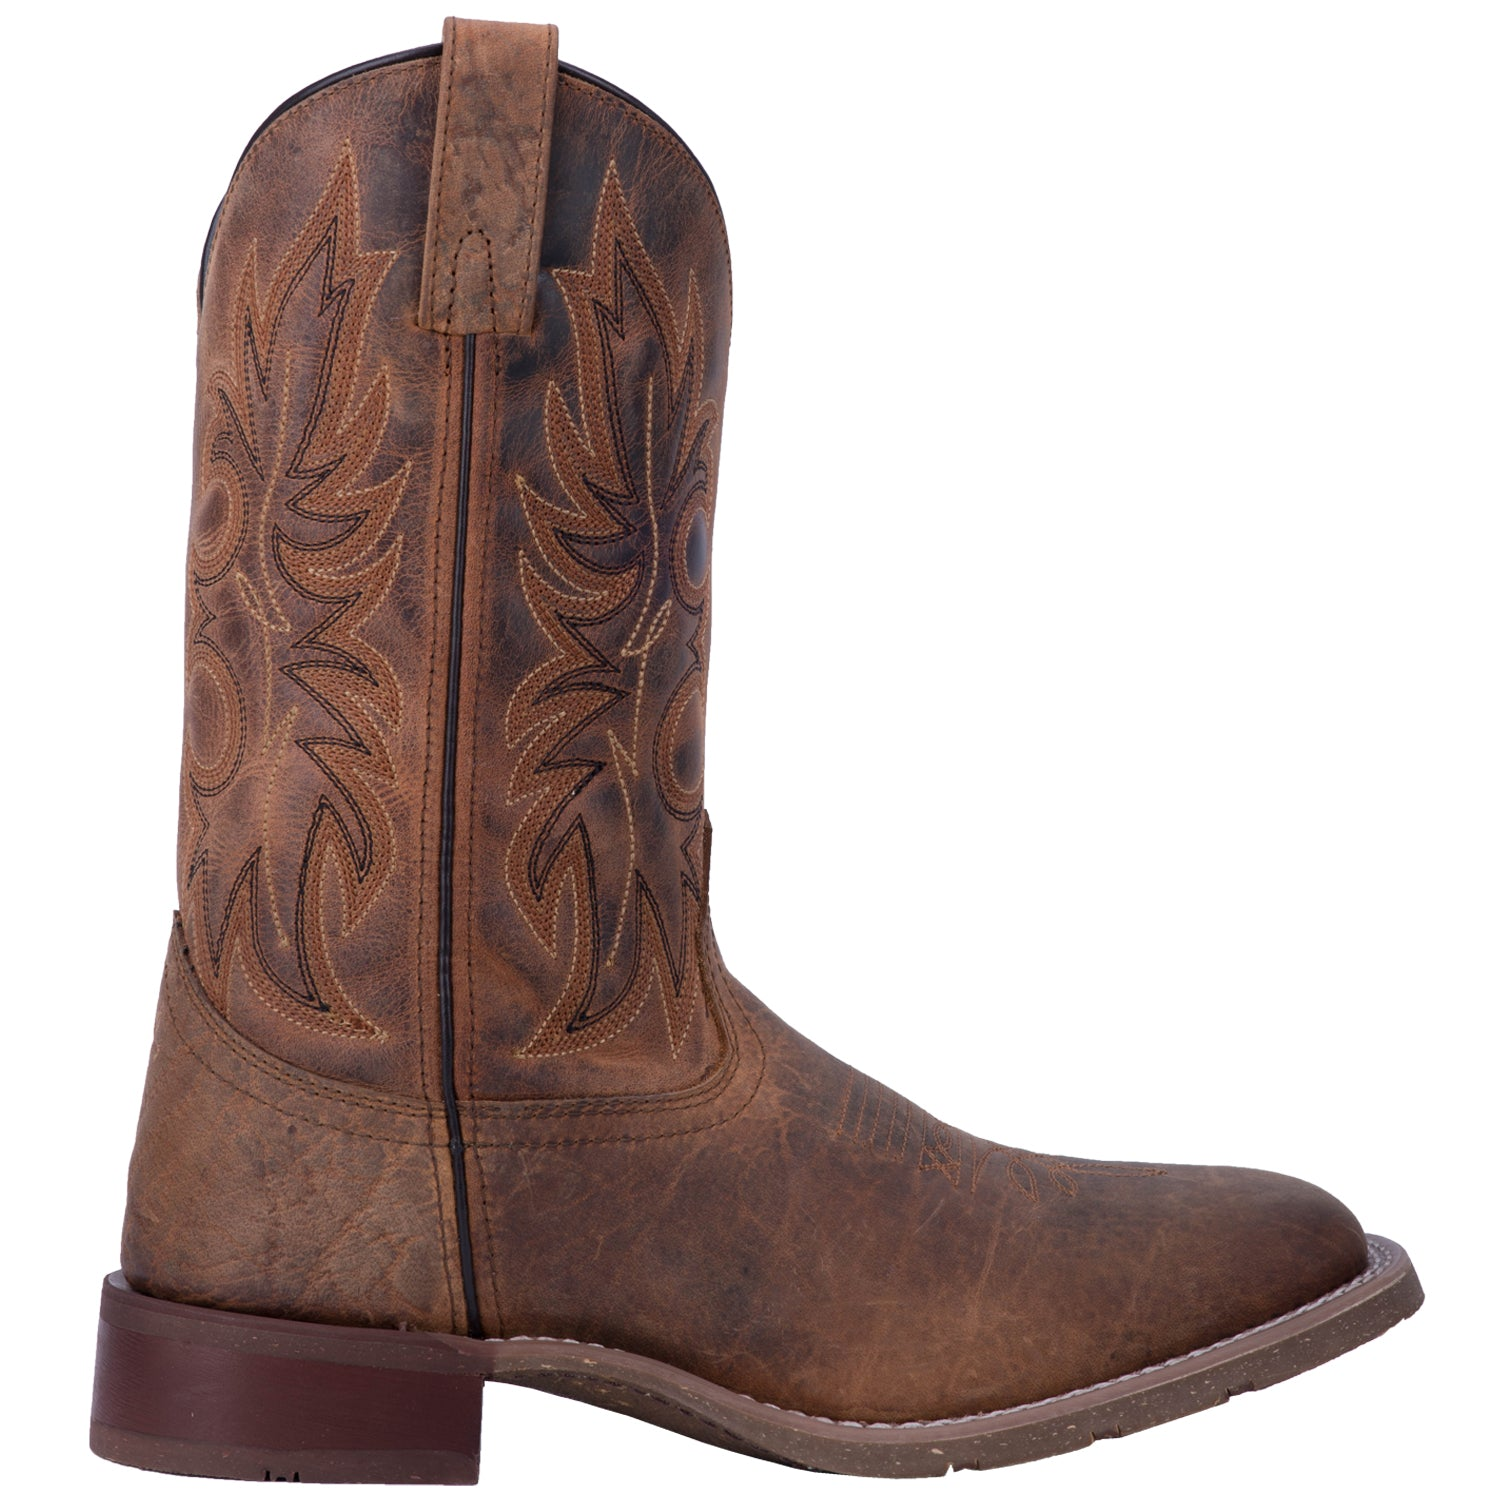 DURANT LEATHER BOOT 4252387115050